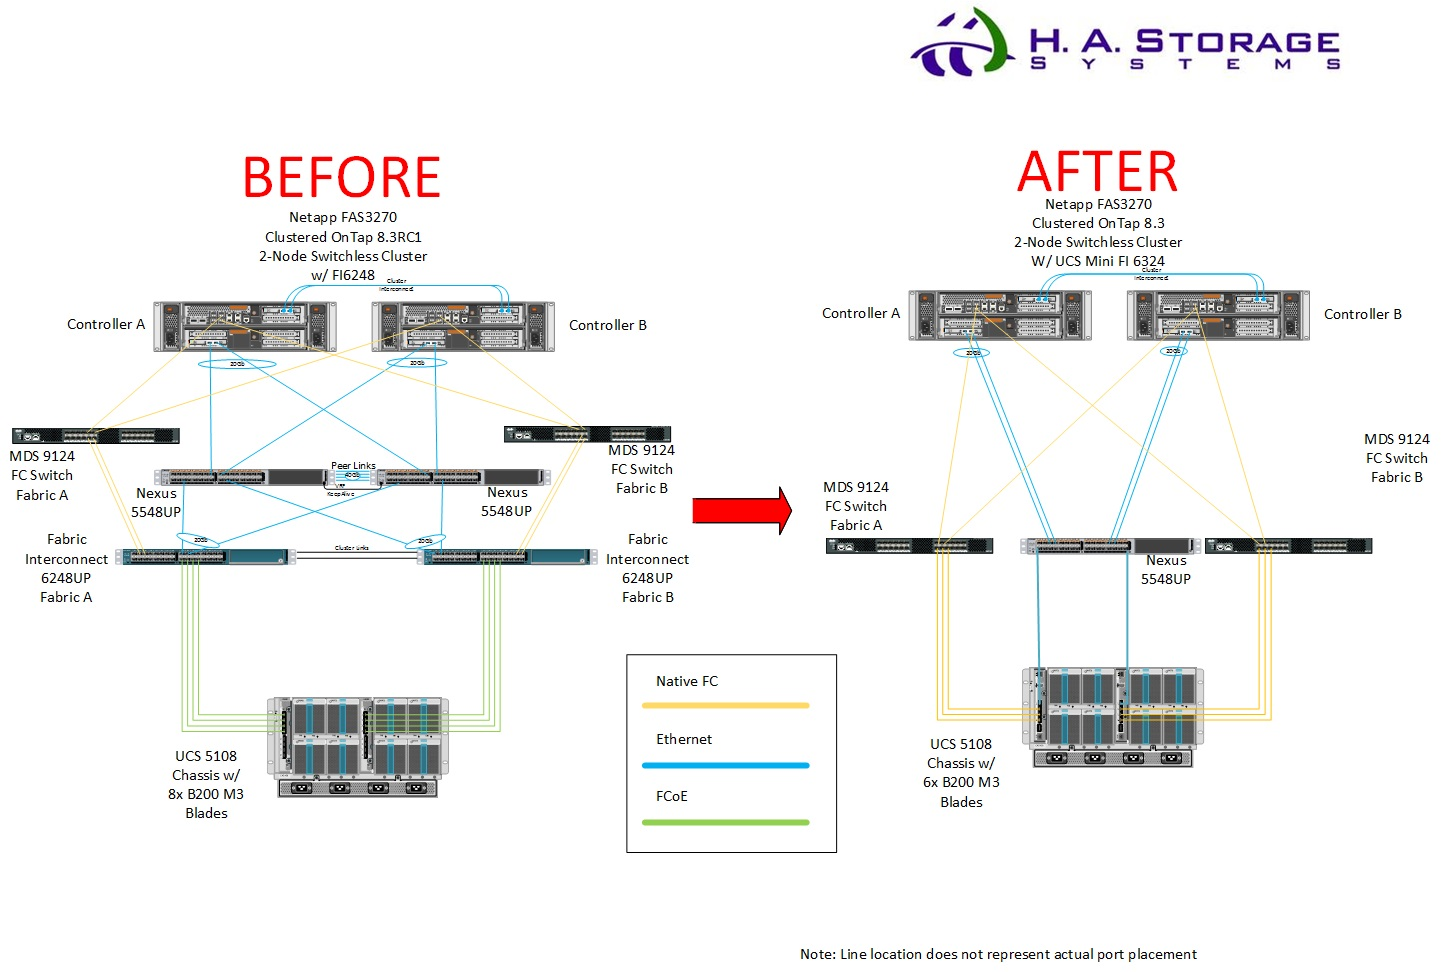 cisco ucs diagram 2000 jeep grand cherokee wiring migrating from a fi6248 to mini 6324 jk 47